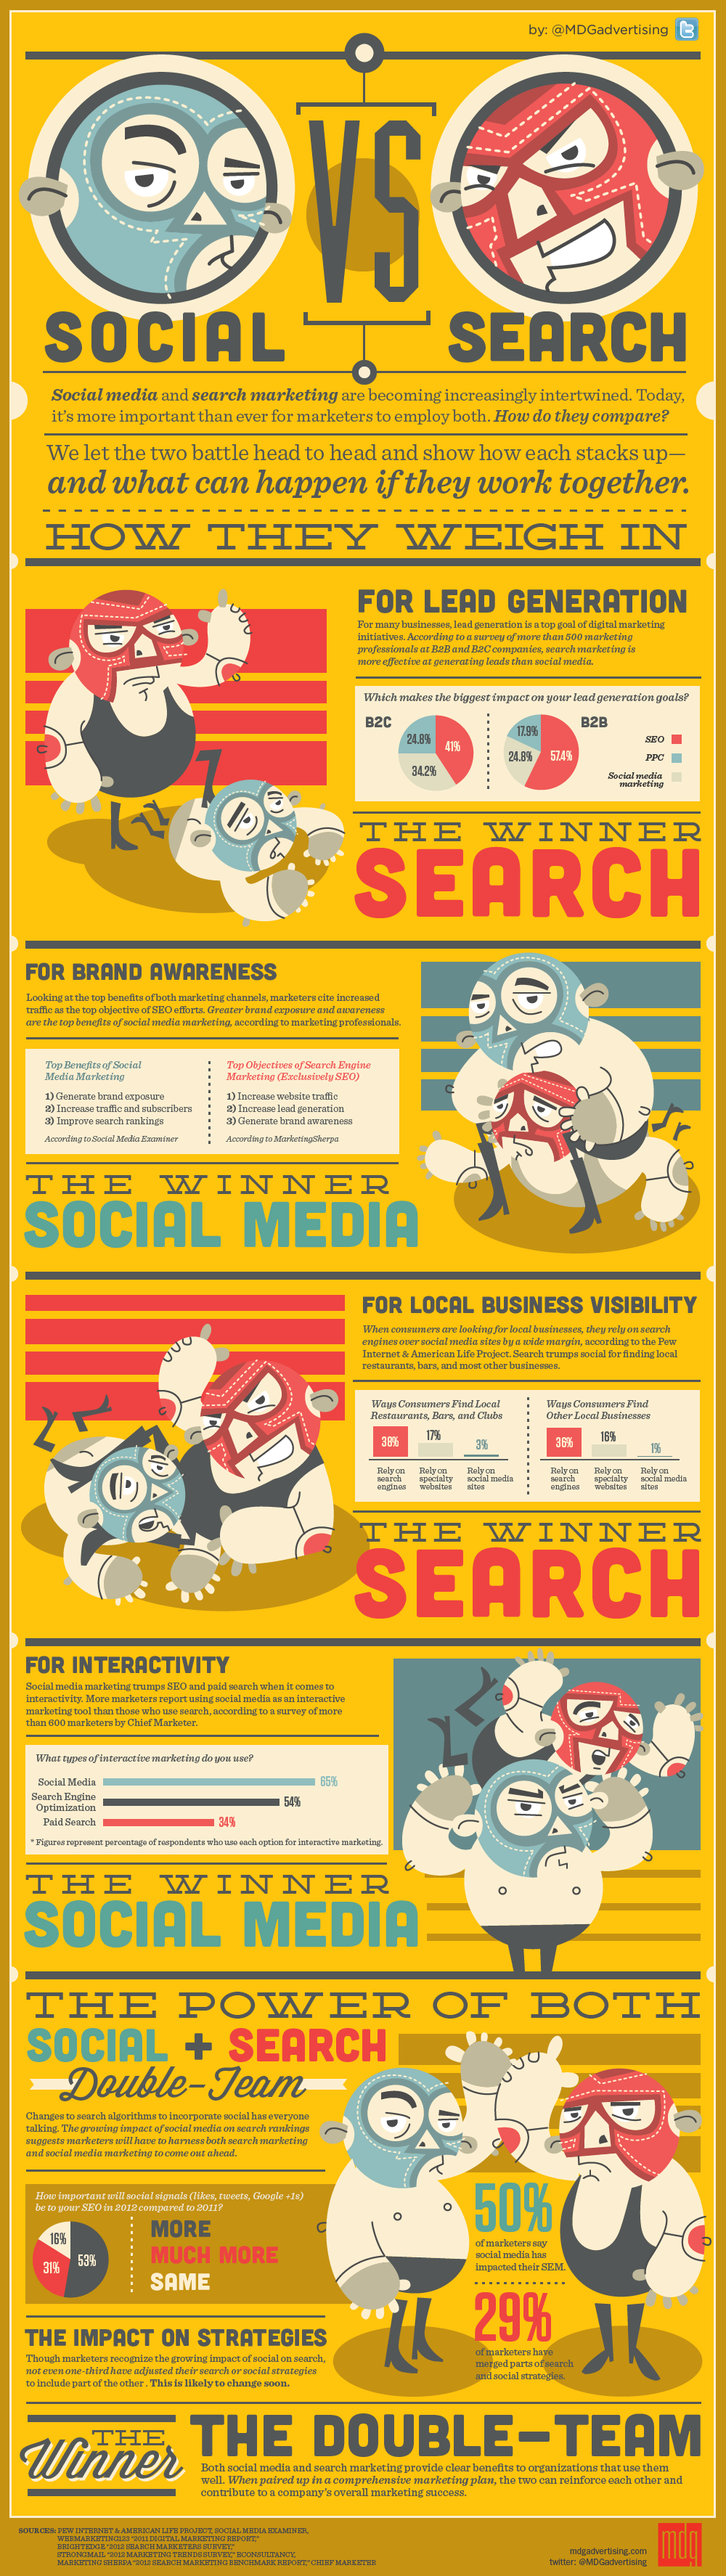 image: Does Social Media overtake SEO?, SEO vs Social media marketing